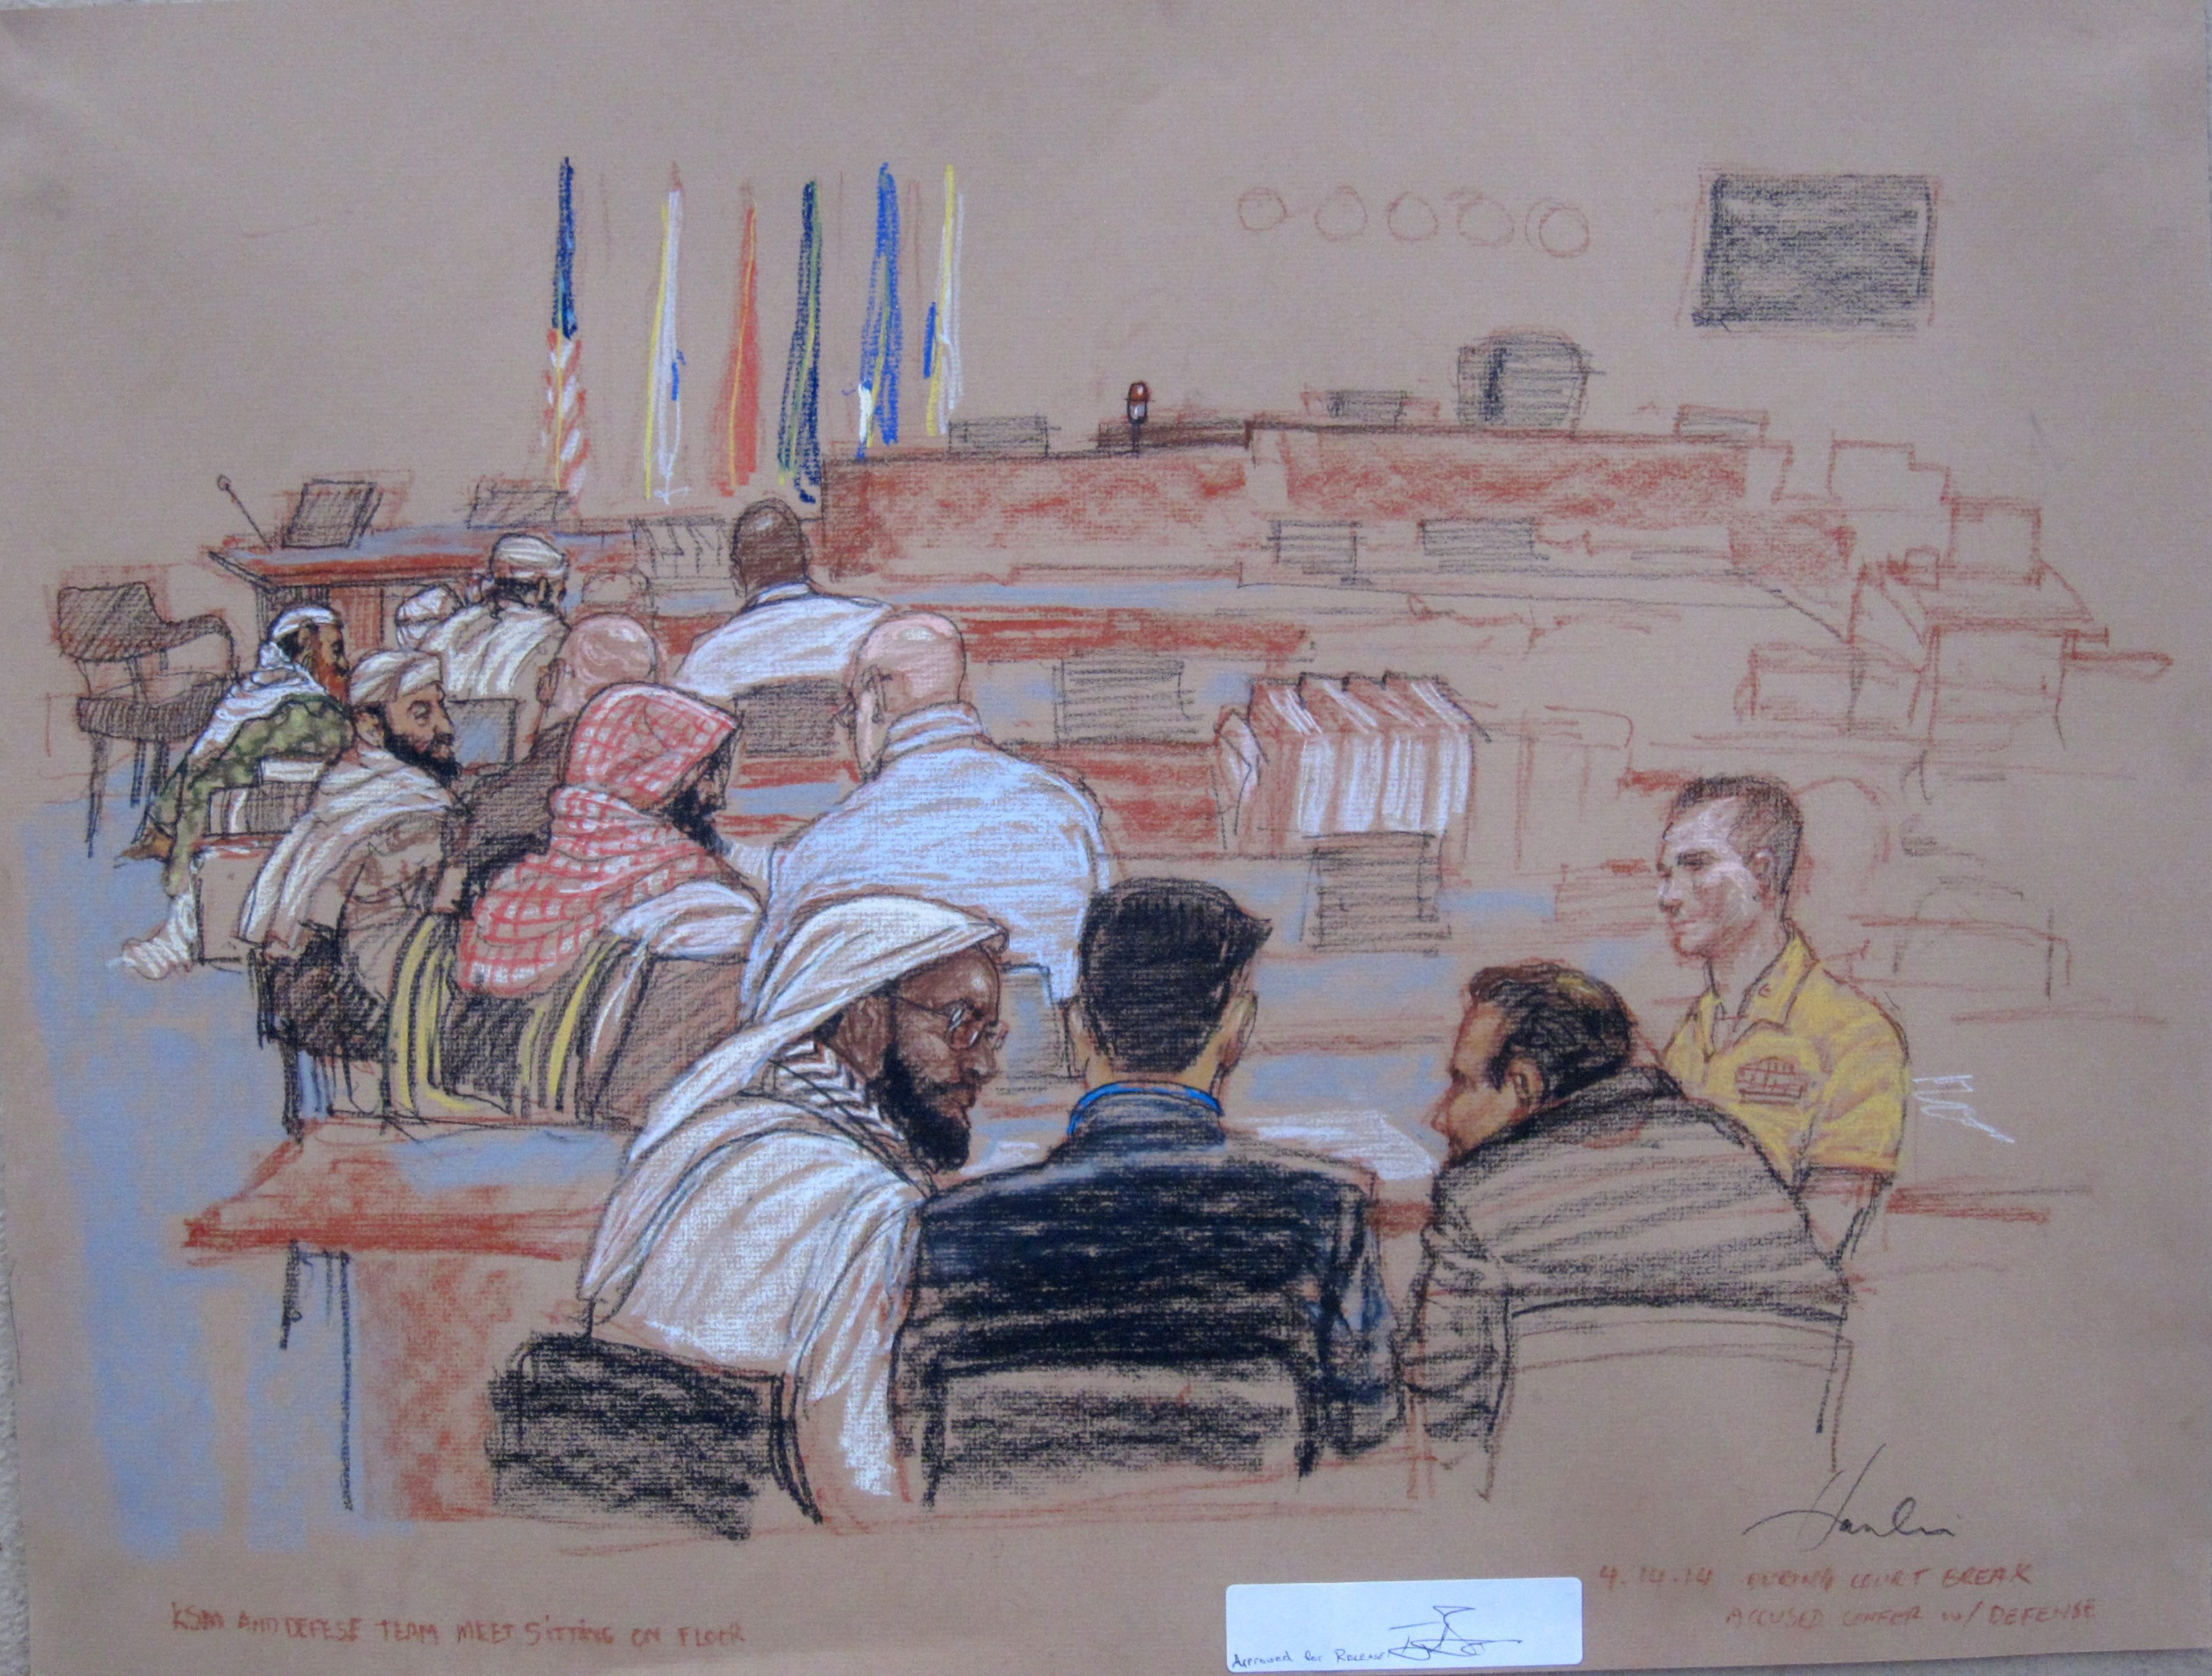 The 9/11 accused confer with their defense lawyers during a break in pretrial hearings at the U.S. Navy base Guantanamo Bay, Cuba, on April 14, 2014.